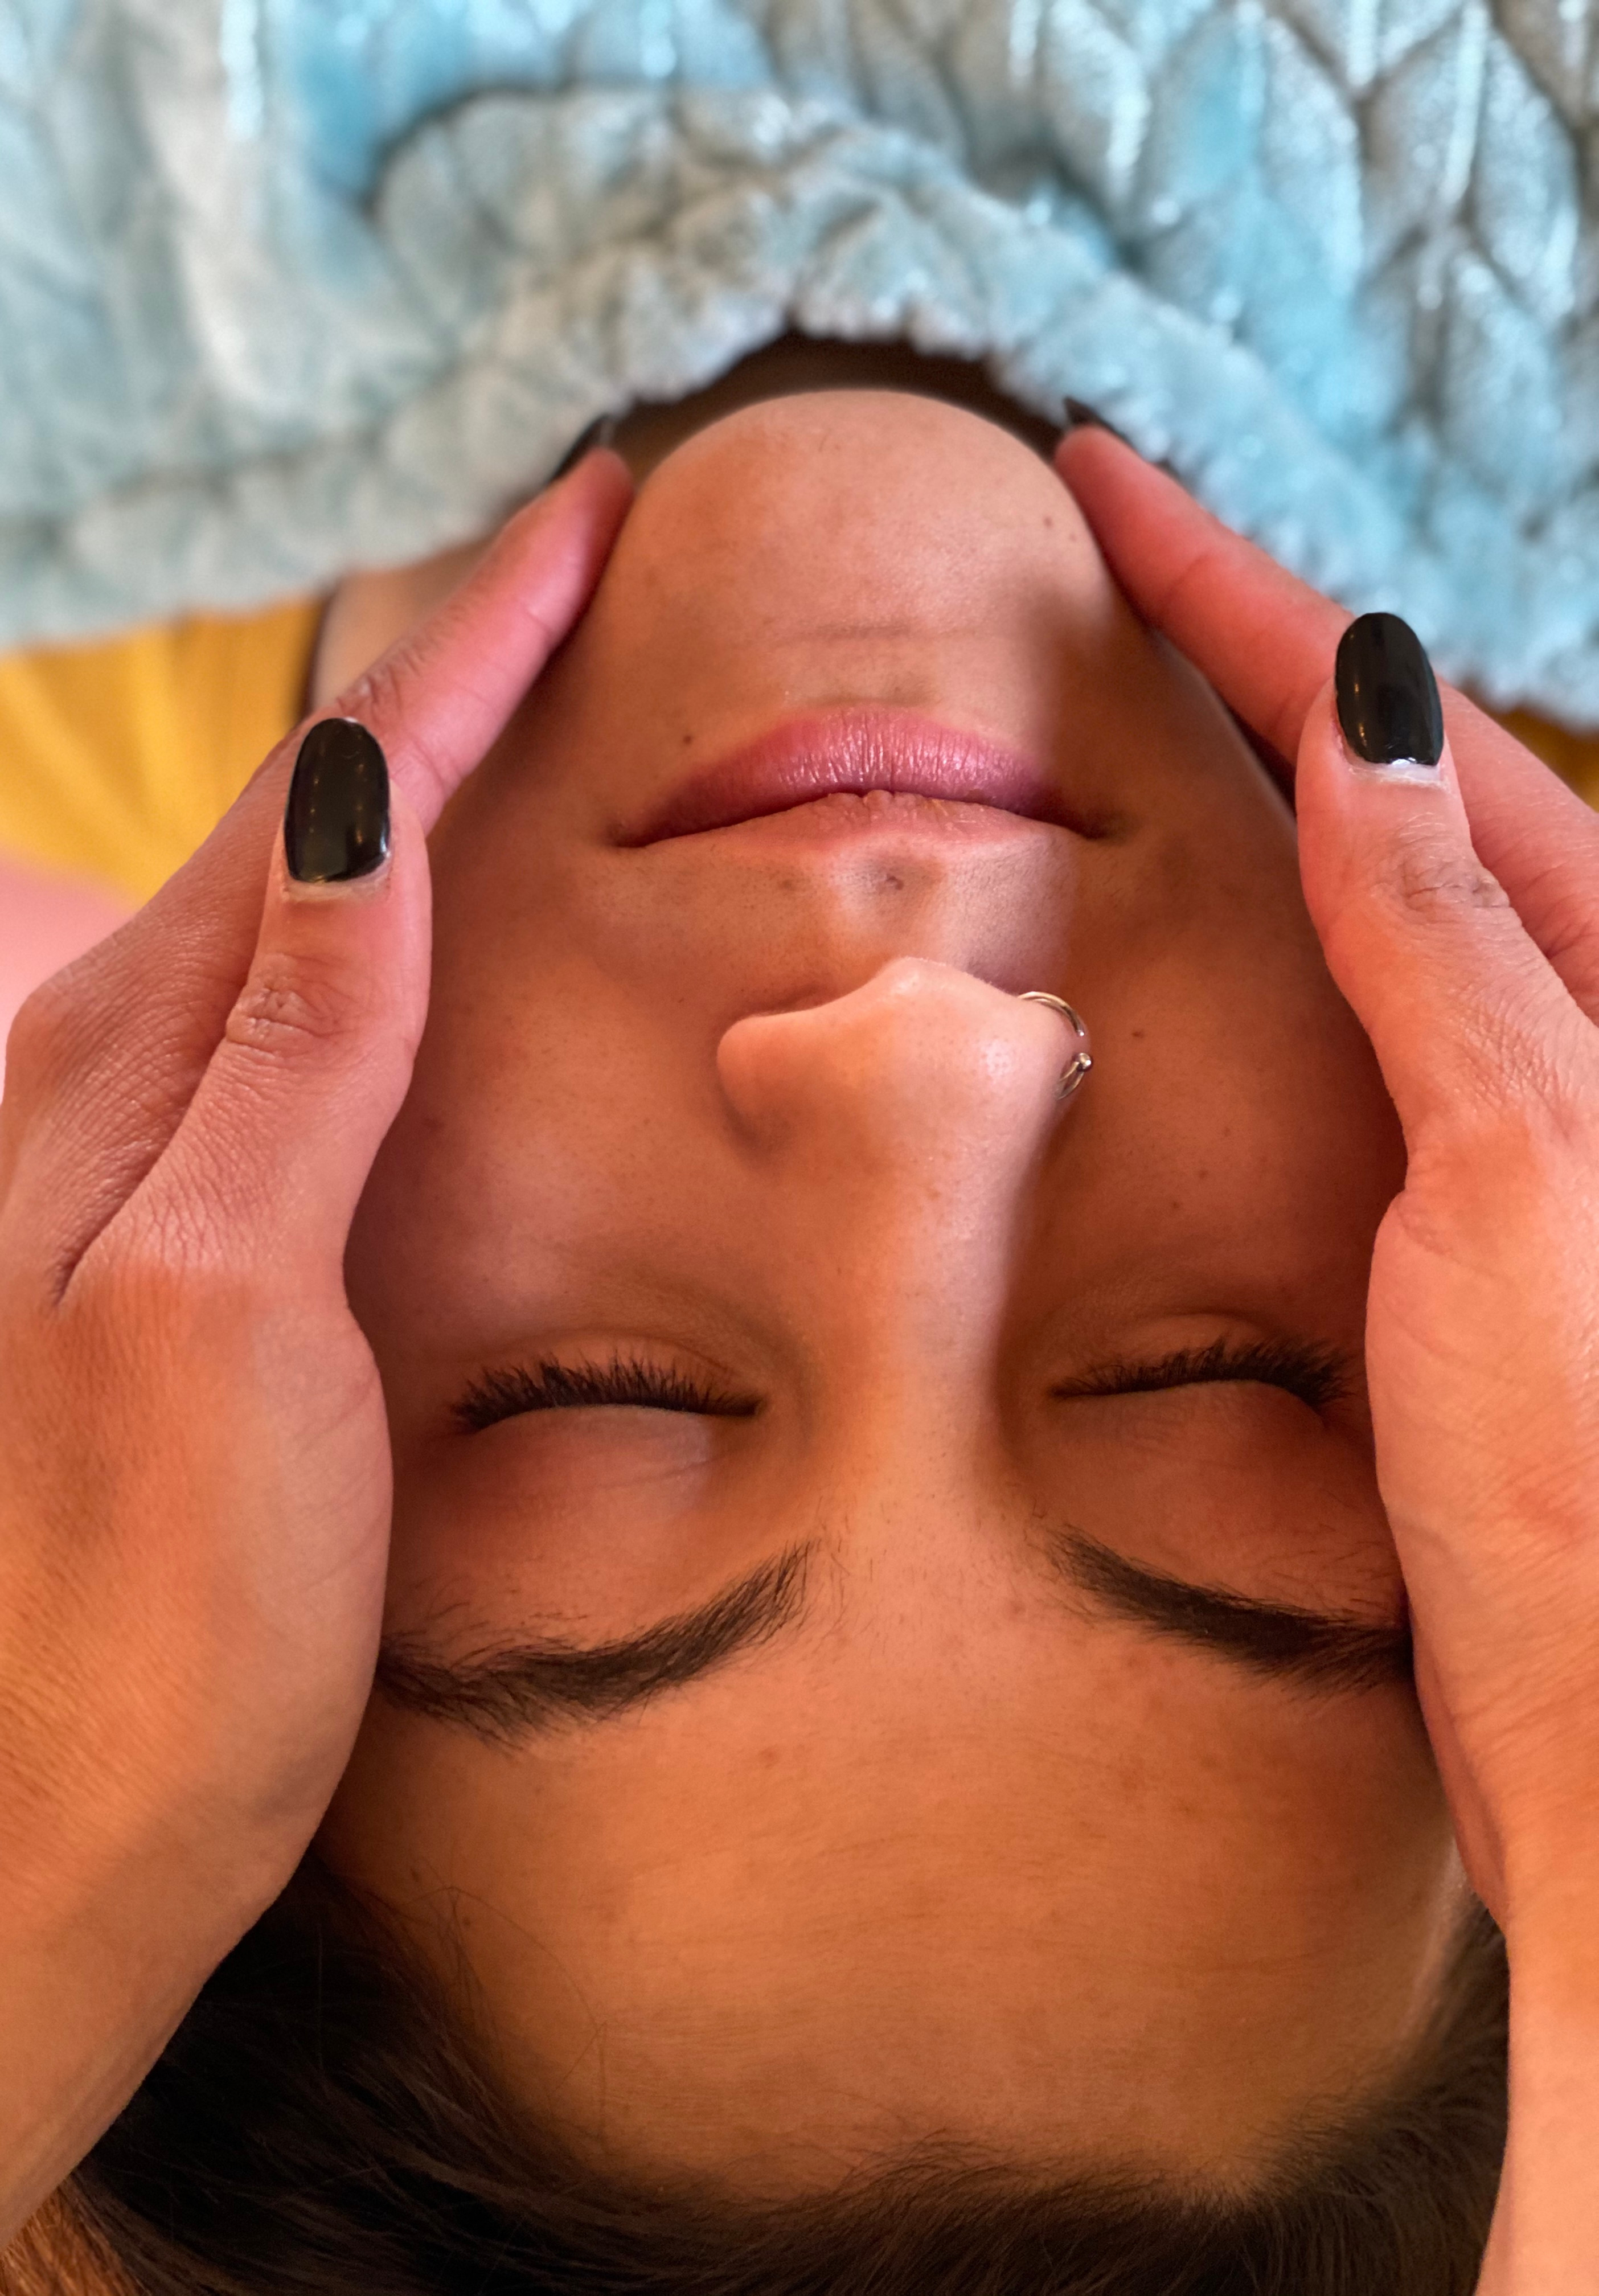 Hands on healing and spiritual cleanse